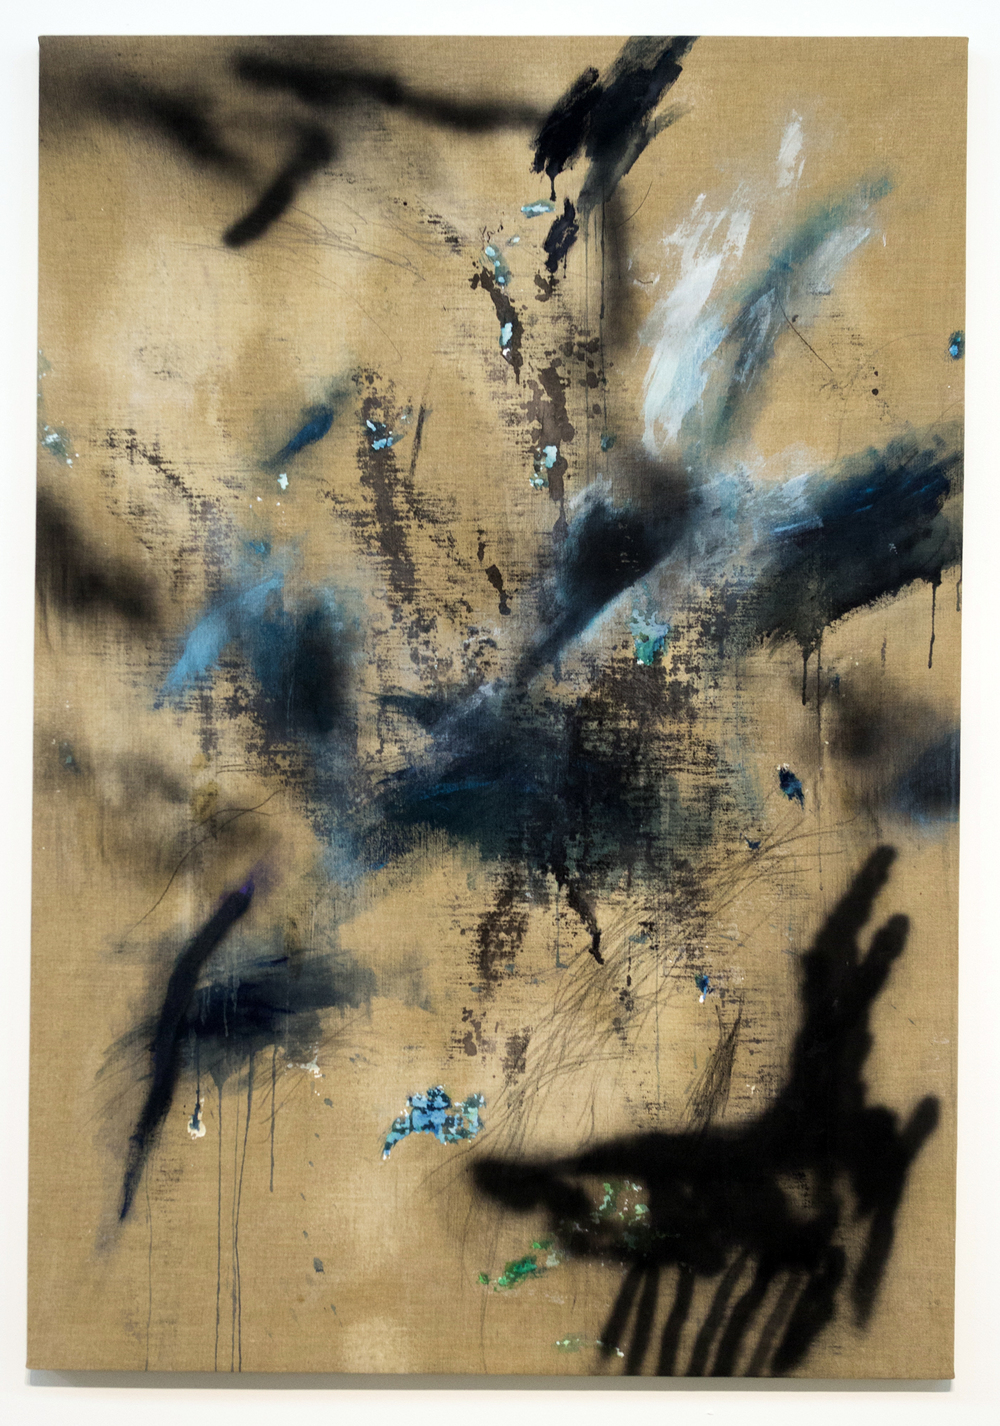 MLSL_07_Ritani, 2015  Oil, acrylic, lead and spray paint on linen  67 x 46.5 in (170.18 x 118.11 cm)